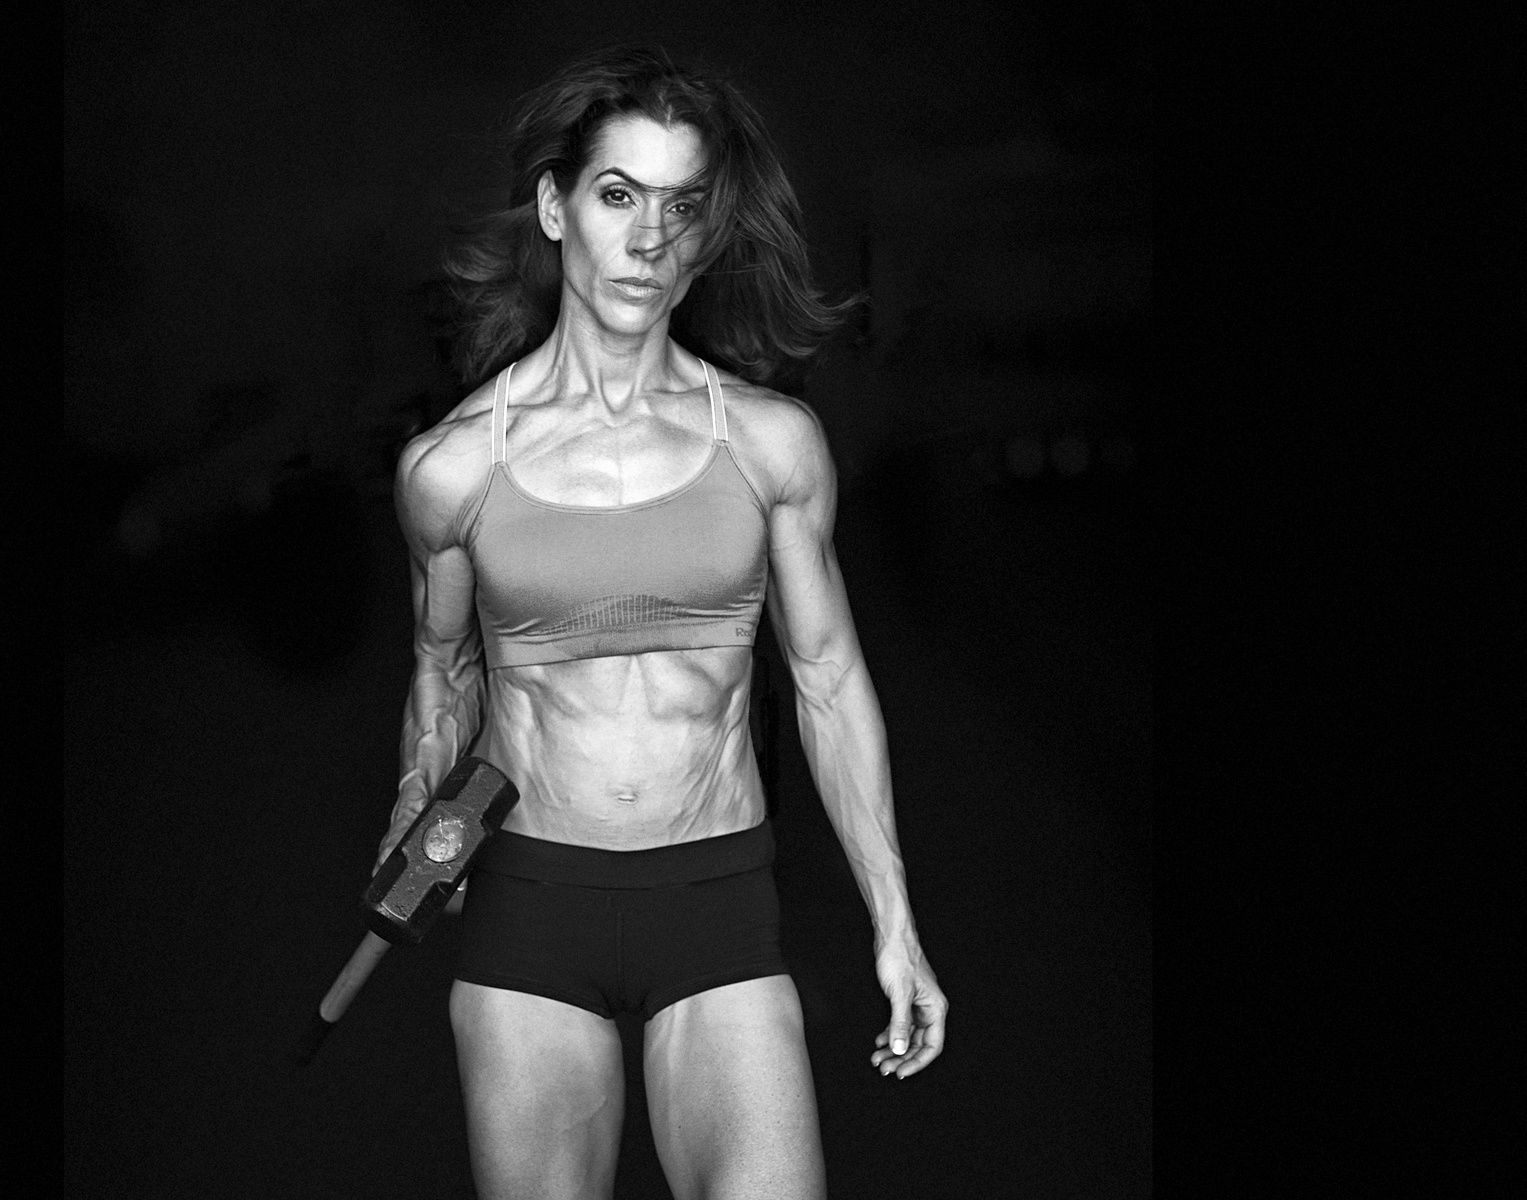 Female Fitness Photography Shoot Ideas Find photos of fit woman. female fitness photography shoot ideas